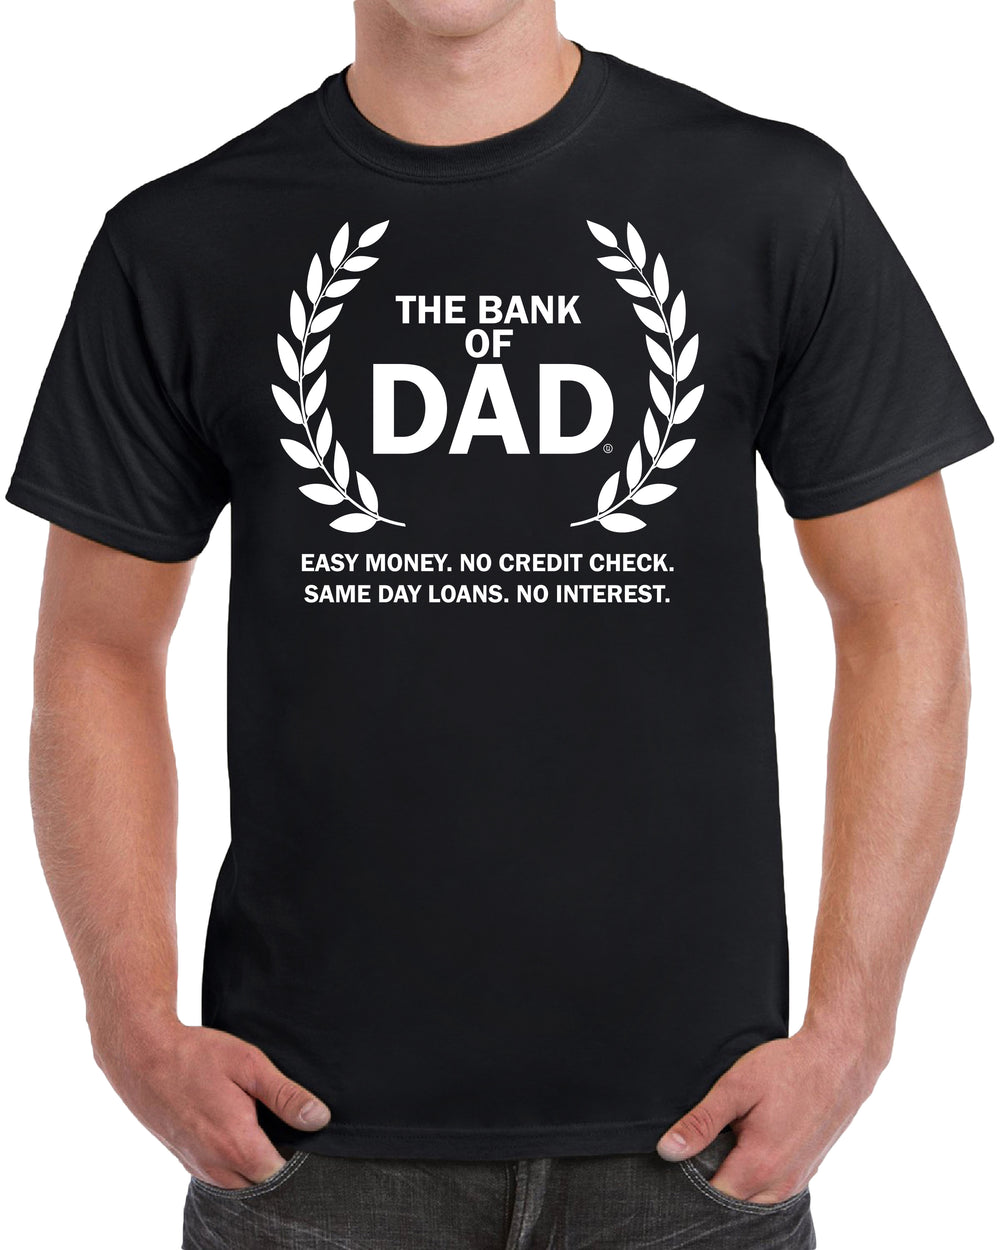 The Bank of Dad Easy Money No Credit Check Same Day Loans No Interest